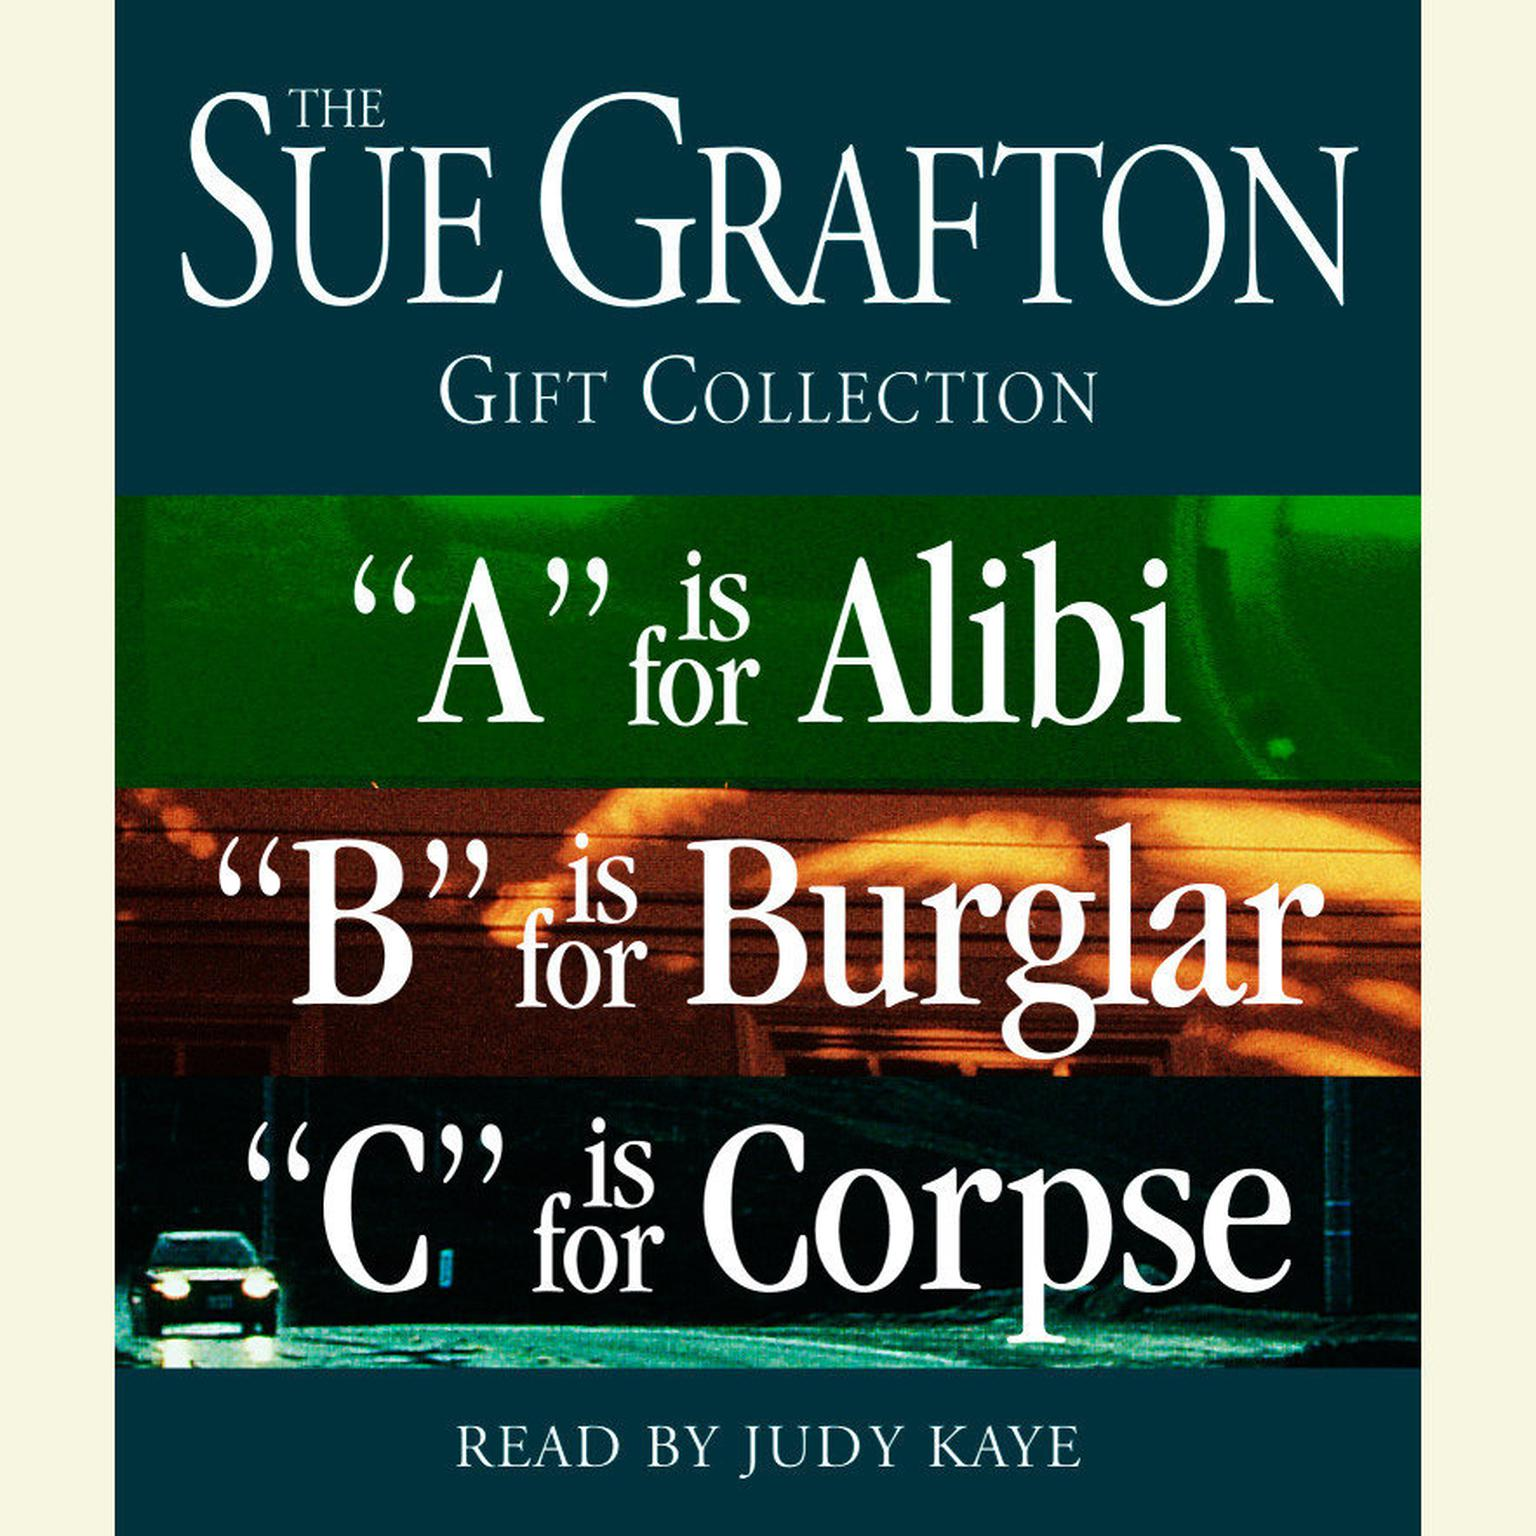 sue grafton abc mystery series-#23